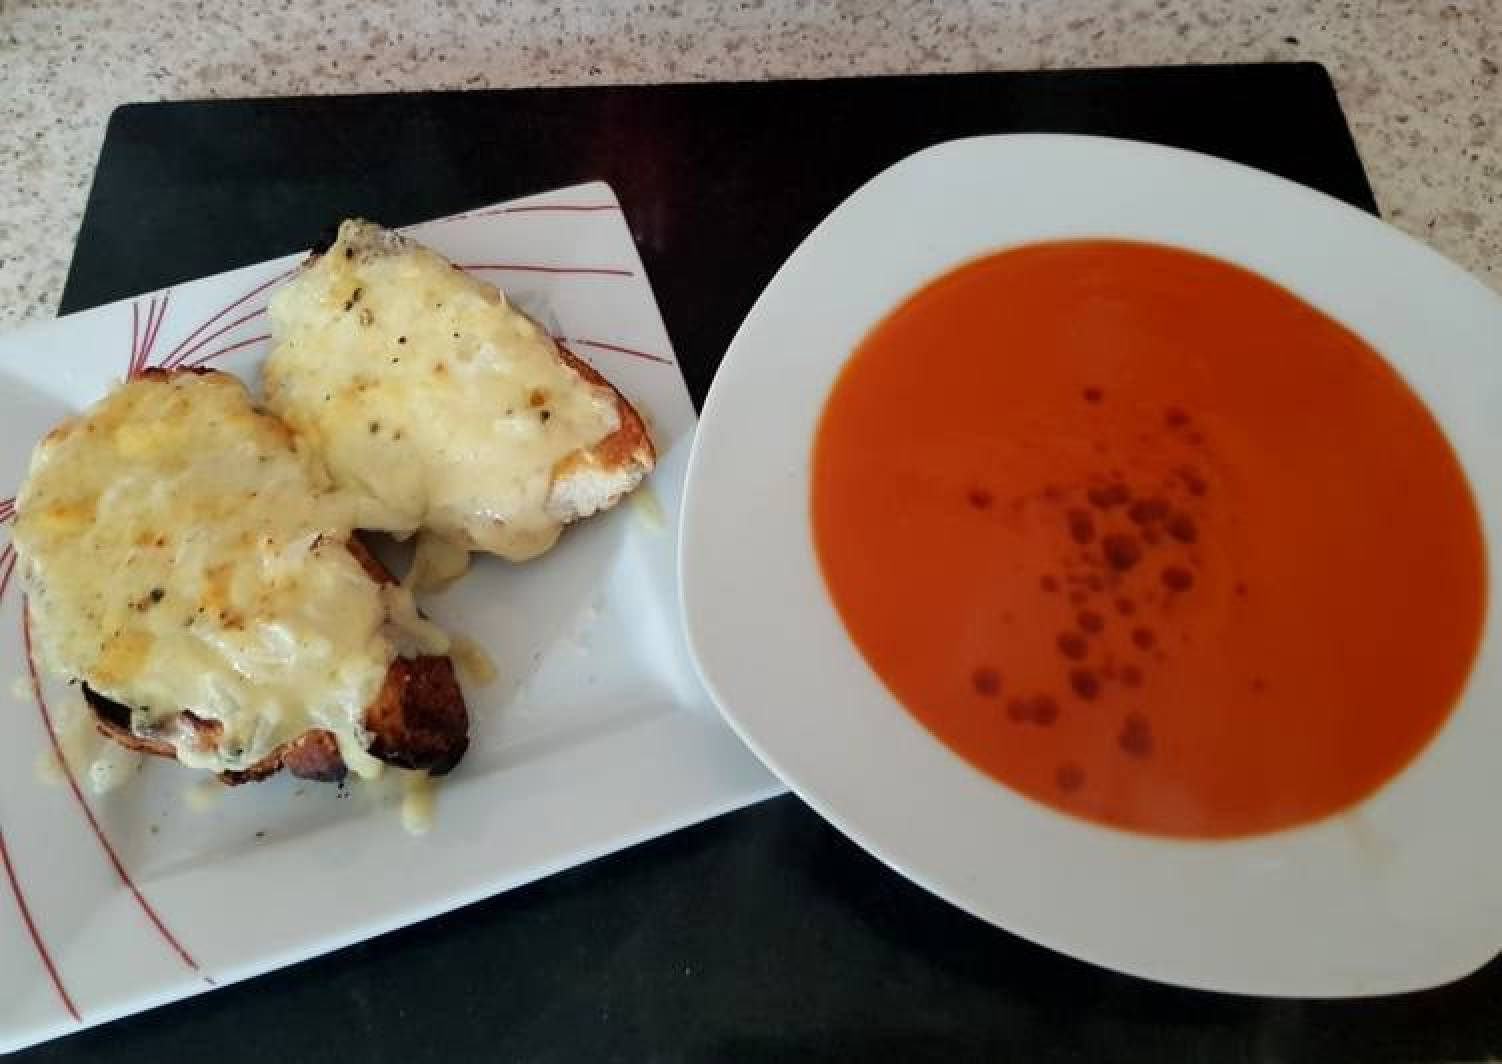 Cheese+Onion OnThick Toast With Tomato Soup.James Martin